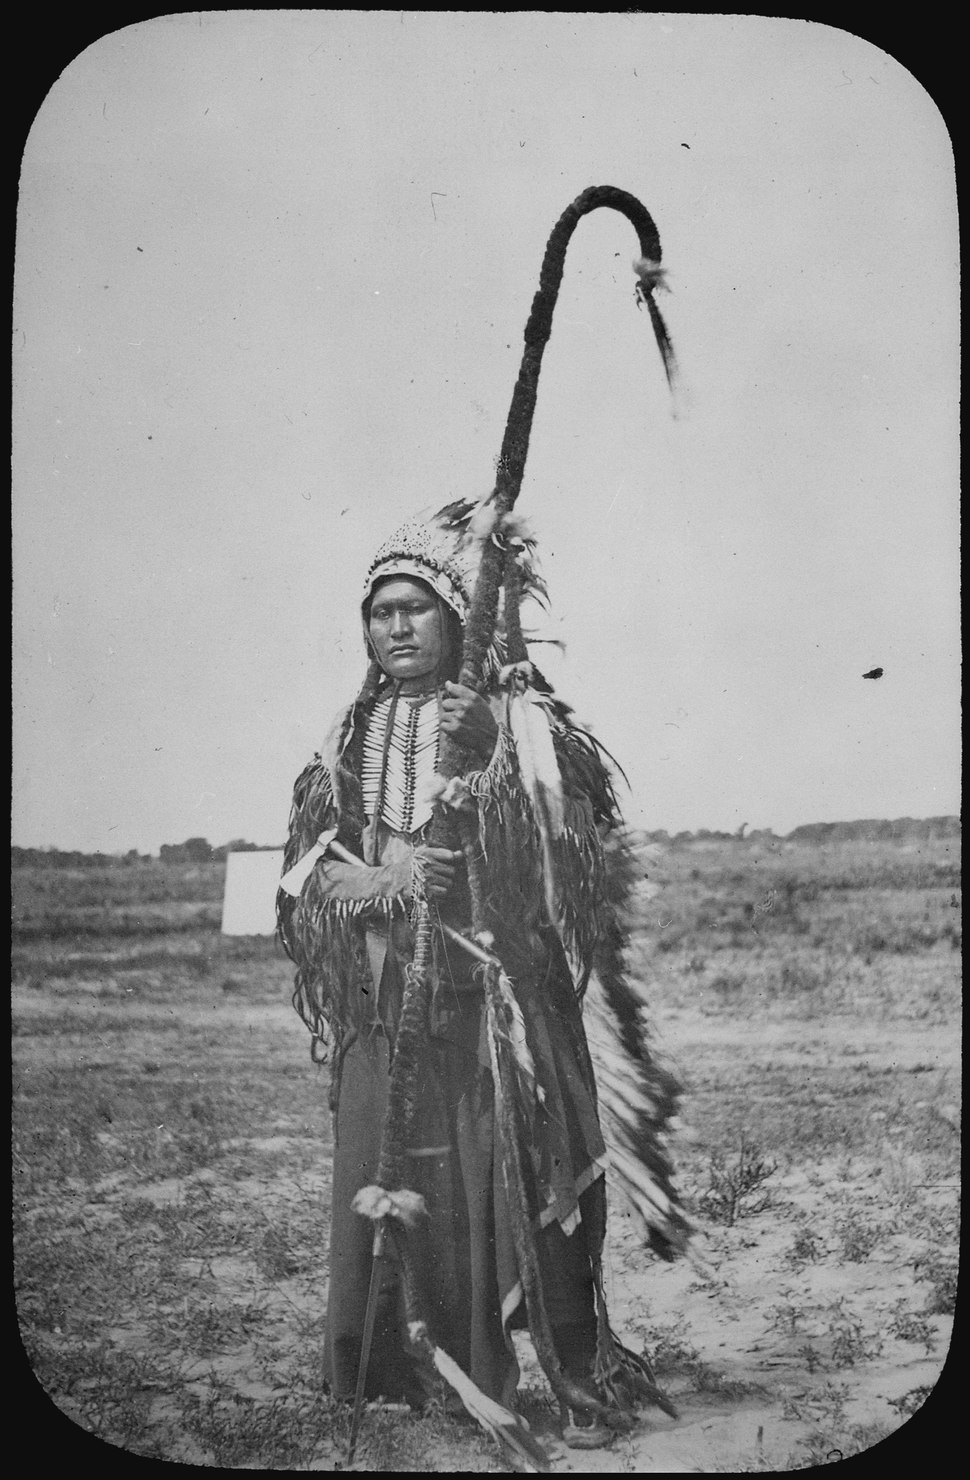 Chief Powder Face of the Arapaho, standing full-length, wearing war costume, 1864 - NARA - 520069